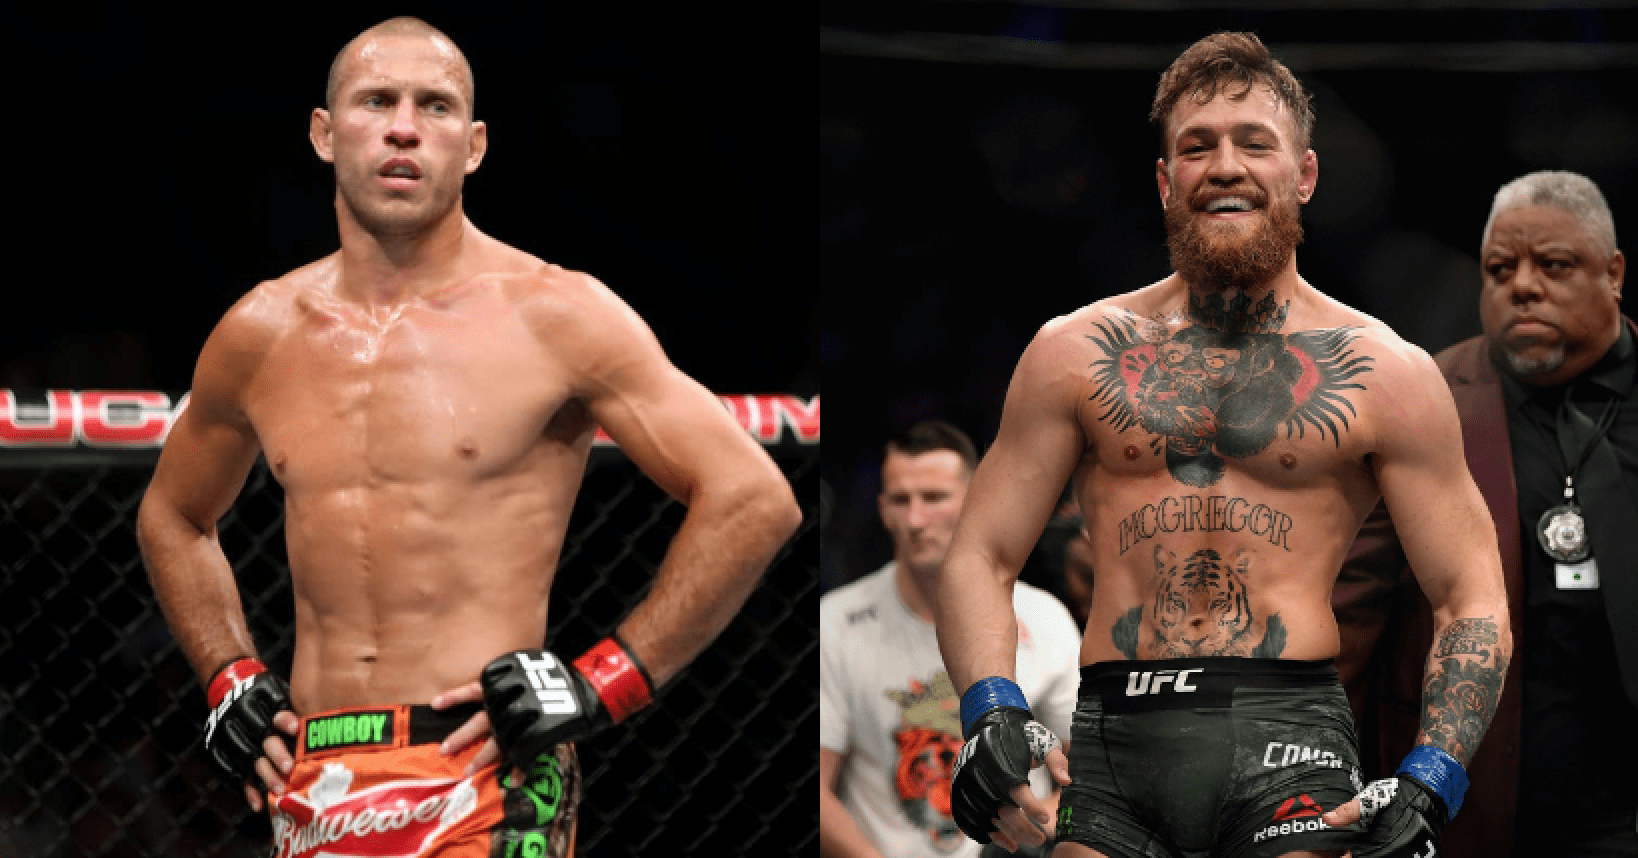 'Cowboy' Cerrone On Conor McGregor Fight: I Think It's Going To Happen